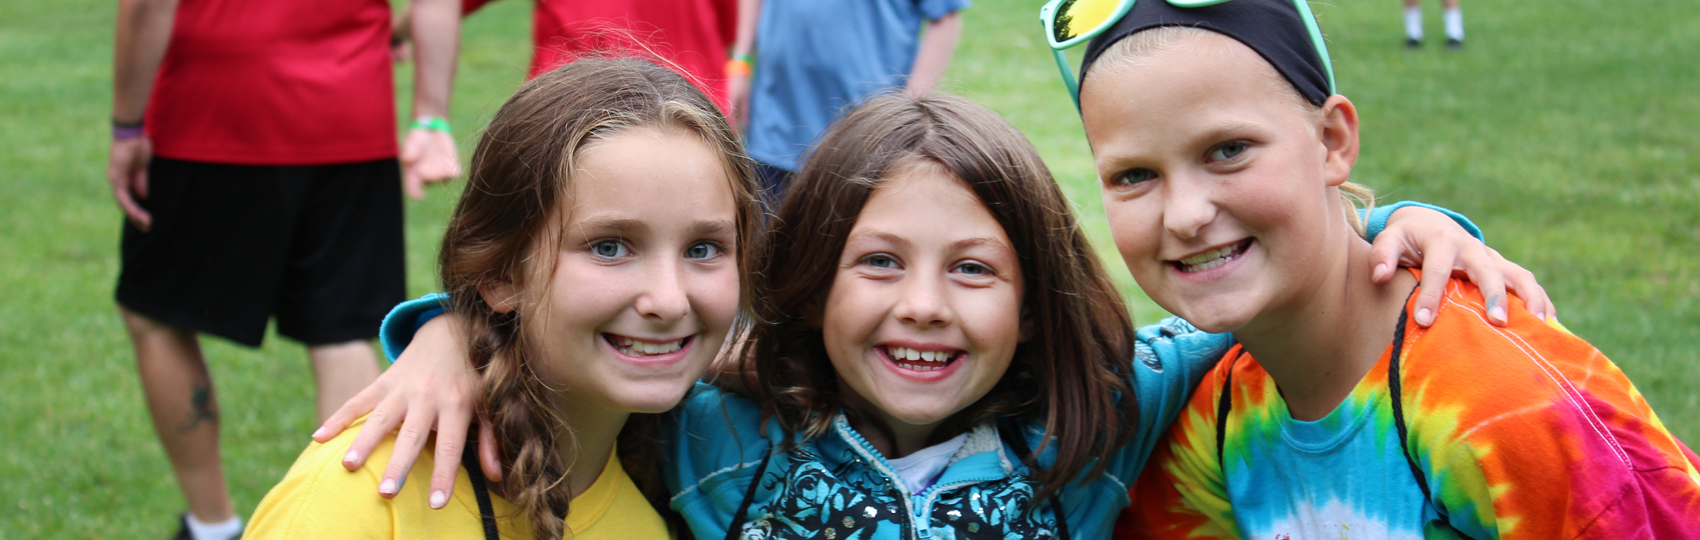 Trio of Happy Girl Campers at Camp Can Do